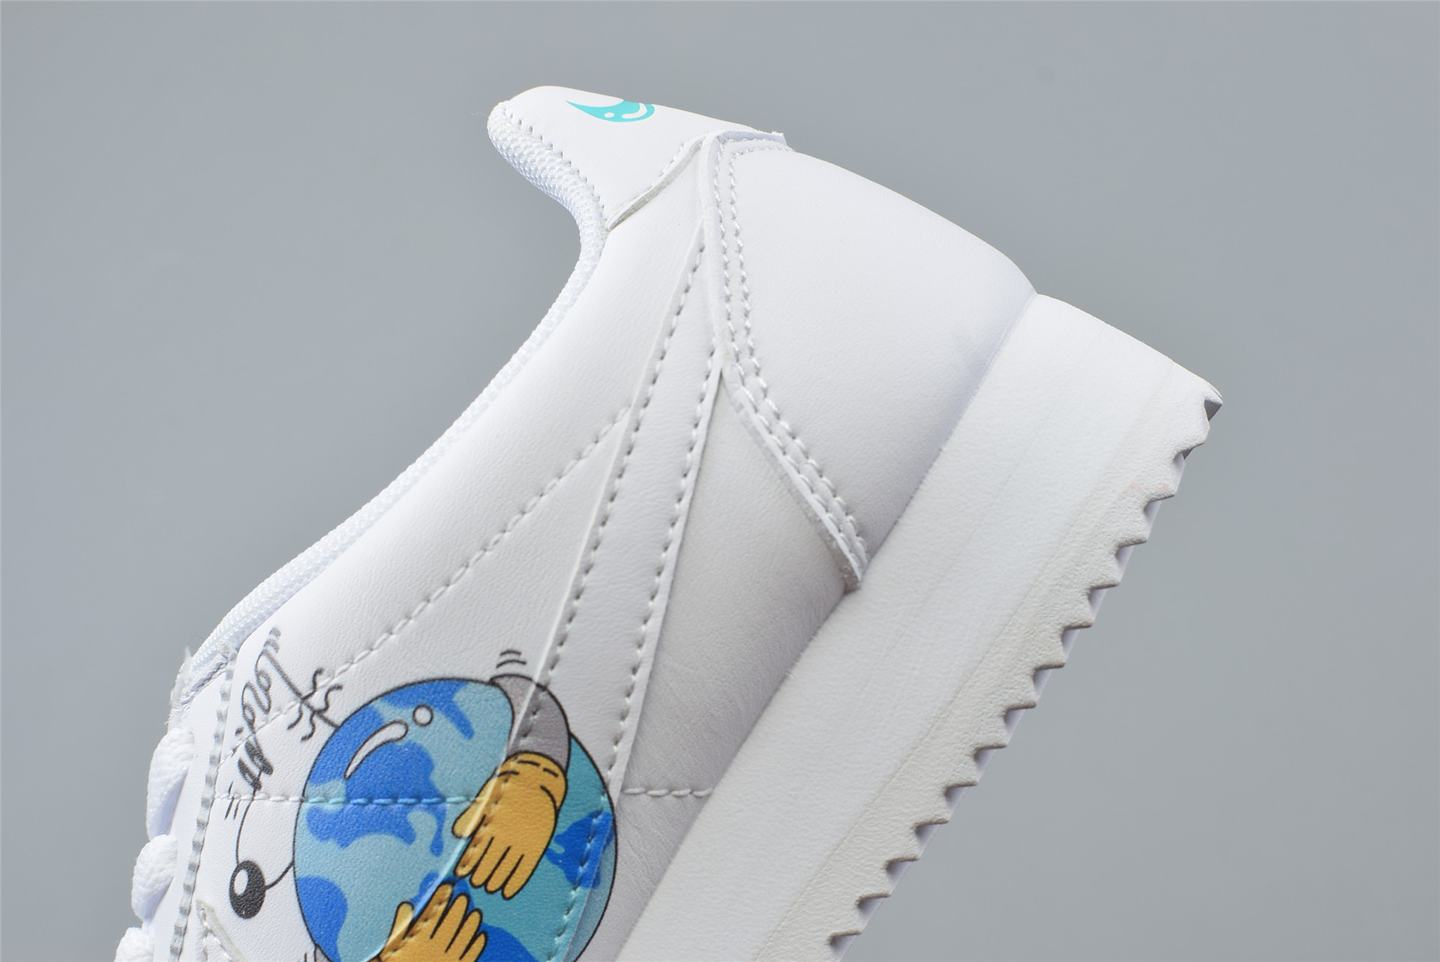 Nike Cortez Flyleather Steve Harrington Earth Day 2019 5